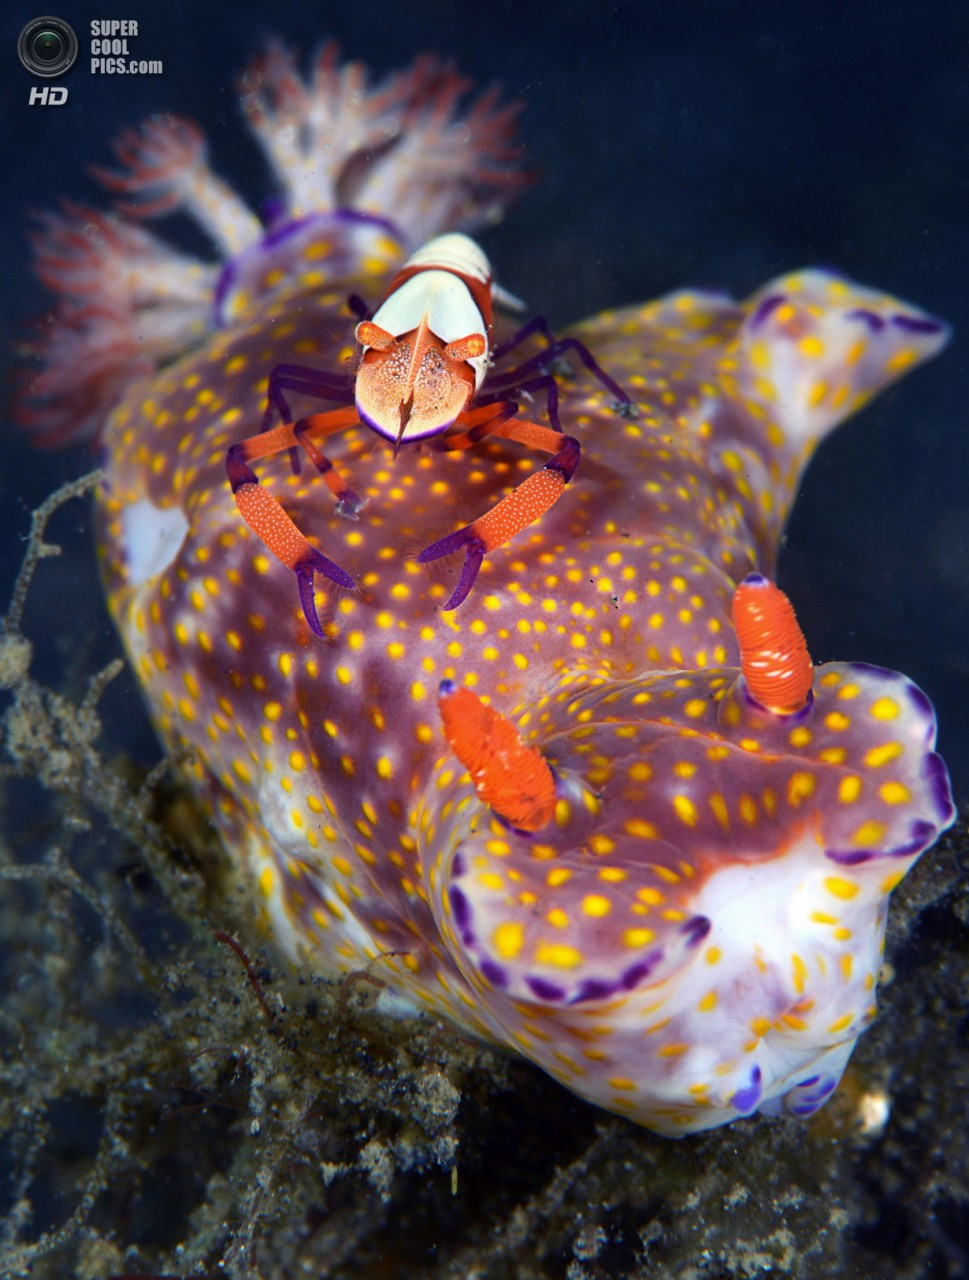 Категория: Macro/Nudibranchia. 1 место. (Marchione Giacomo/UnderwaterPhotography.com)